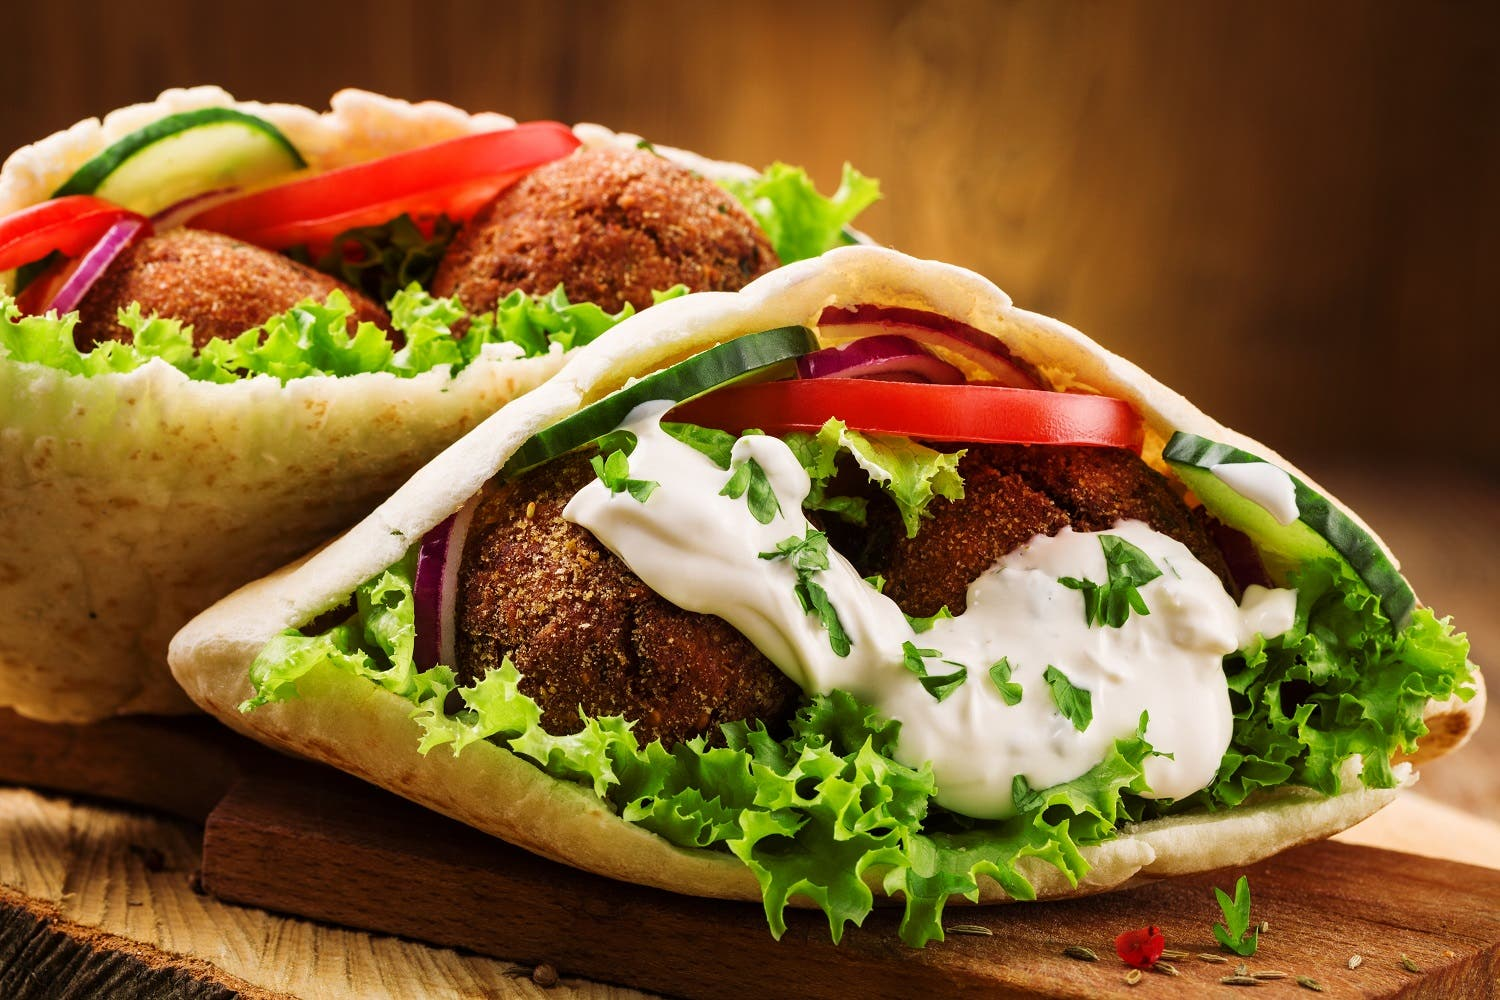 Falafel is made from fava beans or chickpeas, or a combination of the two. The use of chickpeas is predominant in most Middle Eastern countries. (Shutterstock)